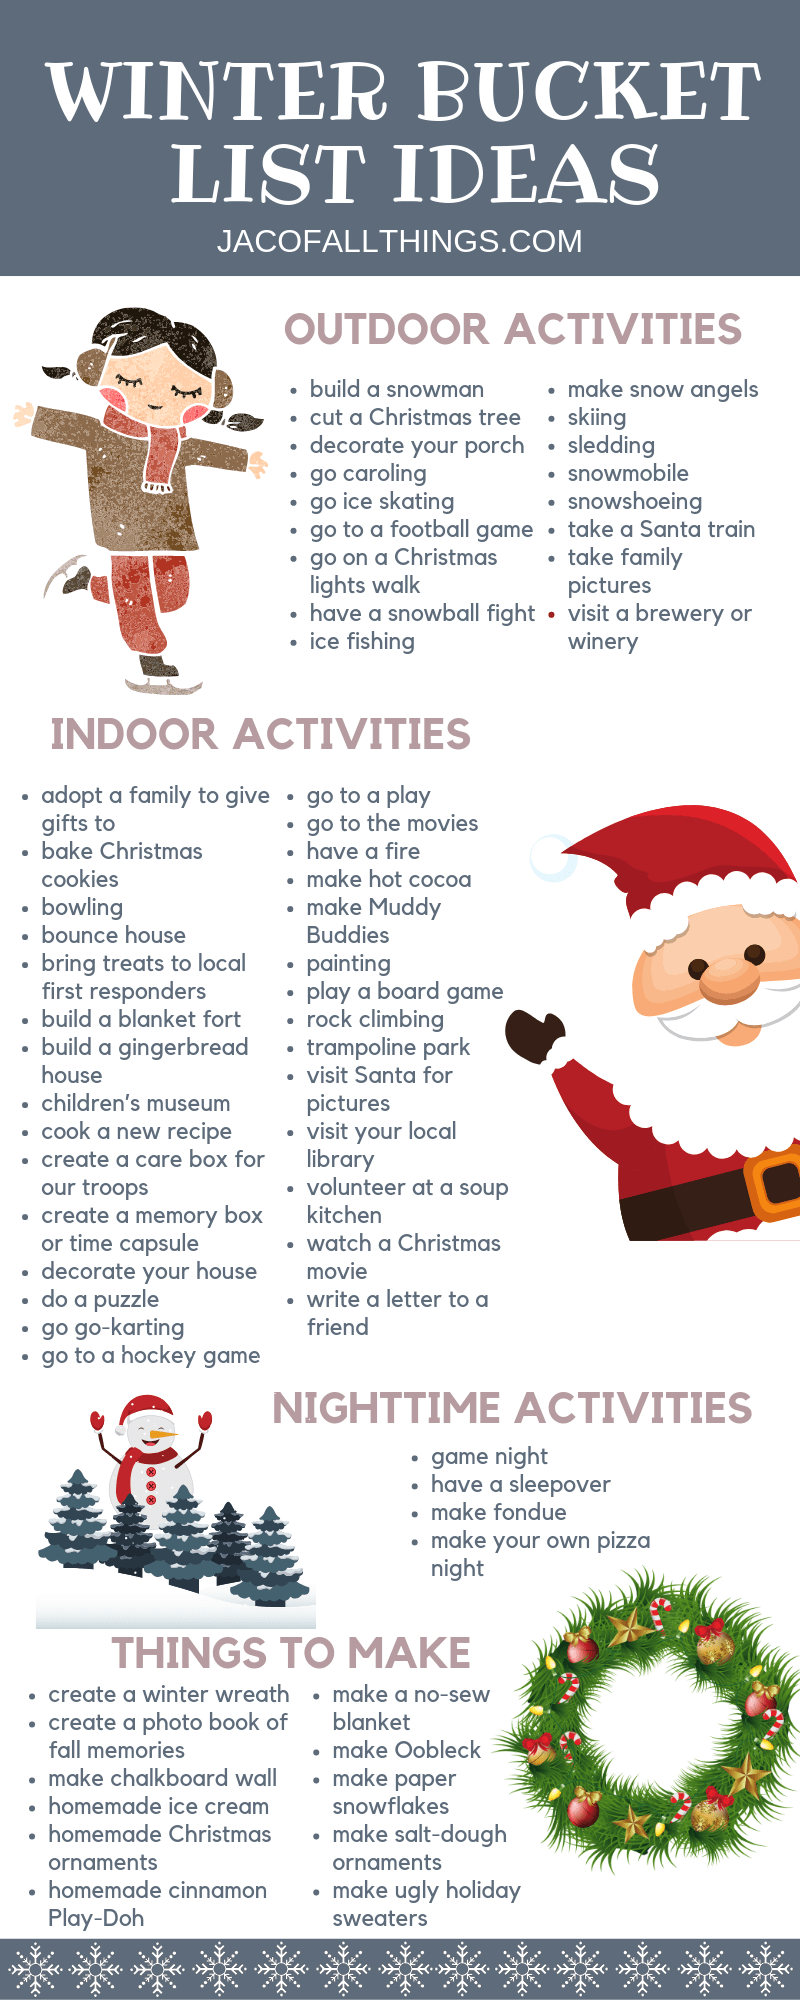 Have fun with your family this winter with these winter activities! Use these indoor and outdoor winter activity ideas to create your family winter bucket list! #winter #winteractivities #winterbucketlist